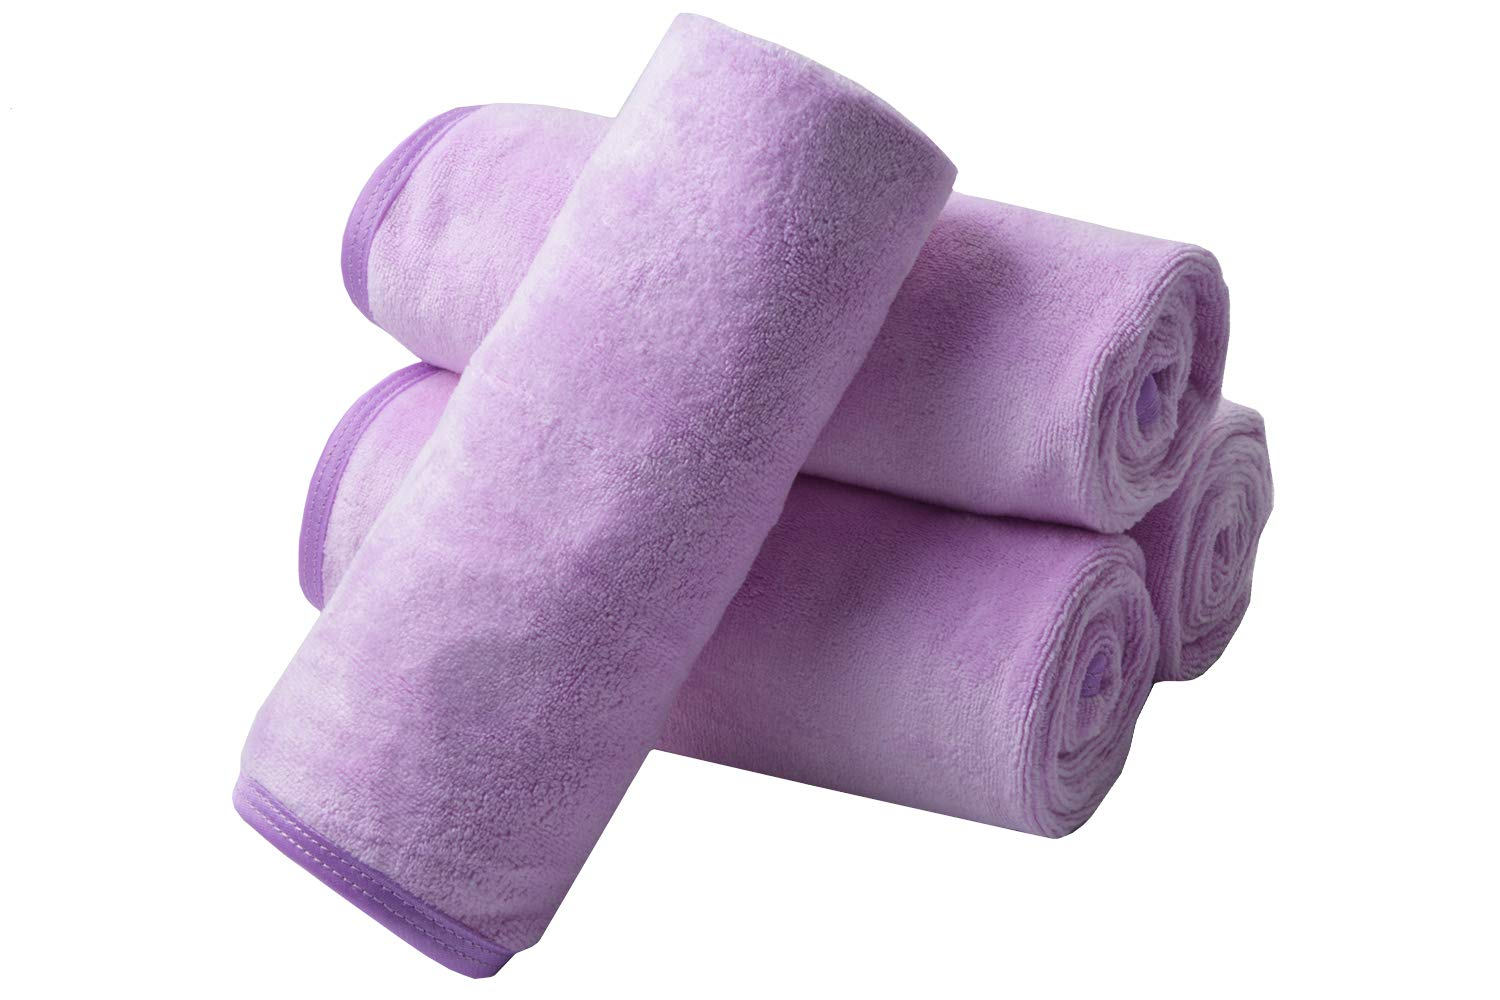 KinHwa Microfiber Hand Towels for Bathroom - Soft and Light-Weight Face Towels Odor Free Wash Towels for Bath, Spa, Gym - Light-Purple 4 Pack